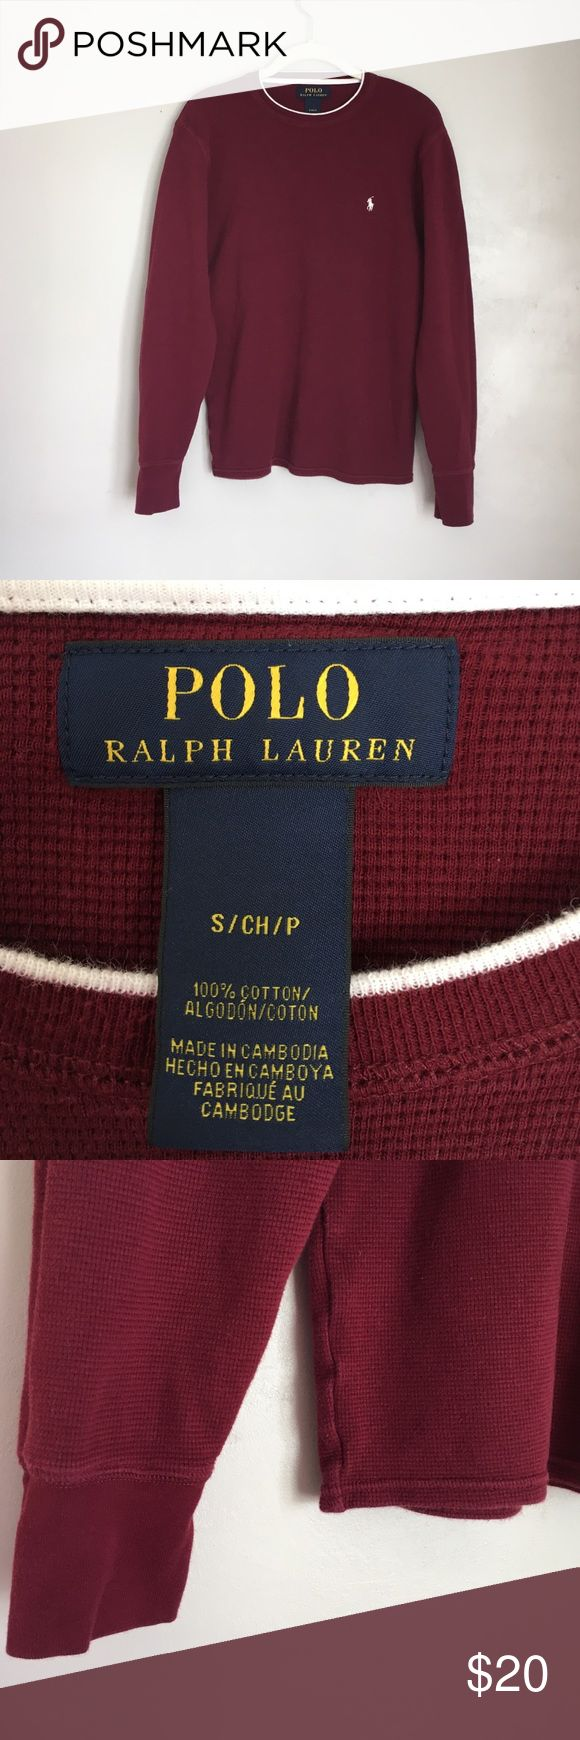 BOYS LONG SLEEVE POLO THERMAL BOYS LONG SLEEVE POLO THERMAL. EUC. Color is most like first three pictures. See pictures for measurements. Length measured from top of neck. Polo by Ralph Lauren Shirts & Tops Tees - Long Sleeve